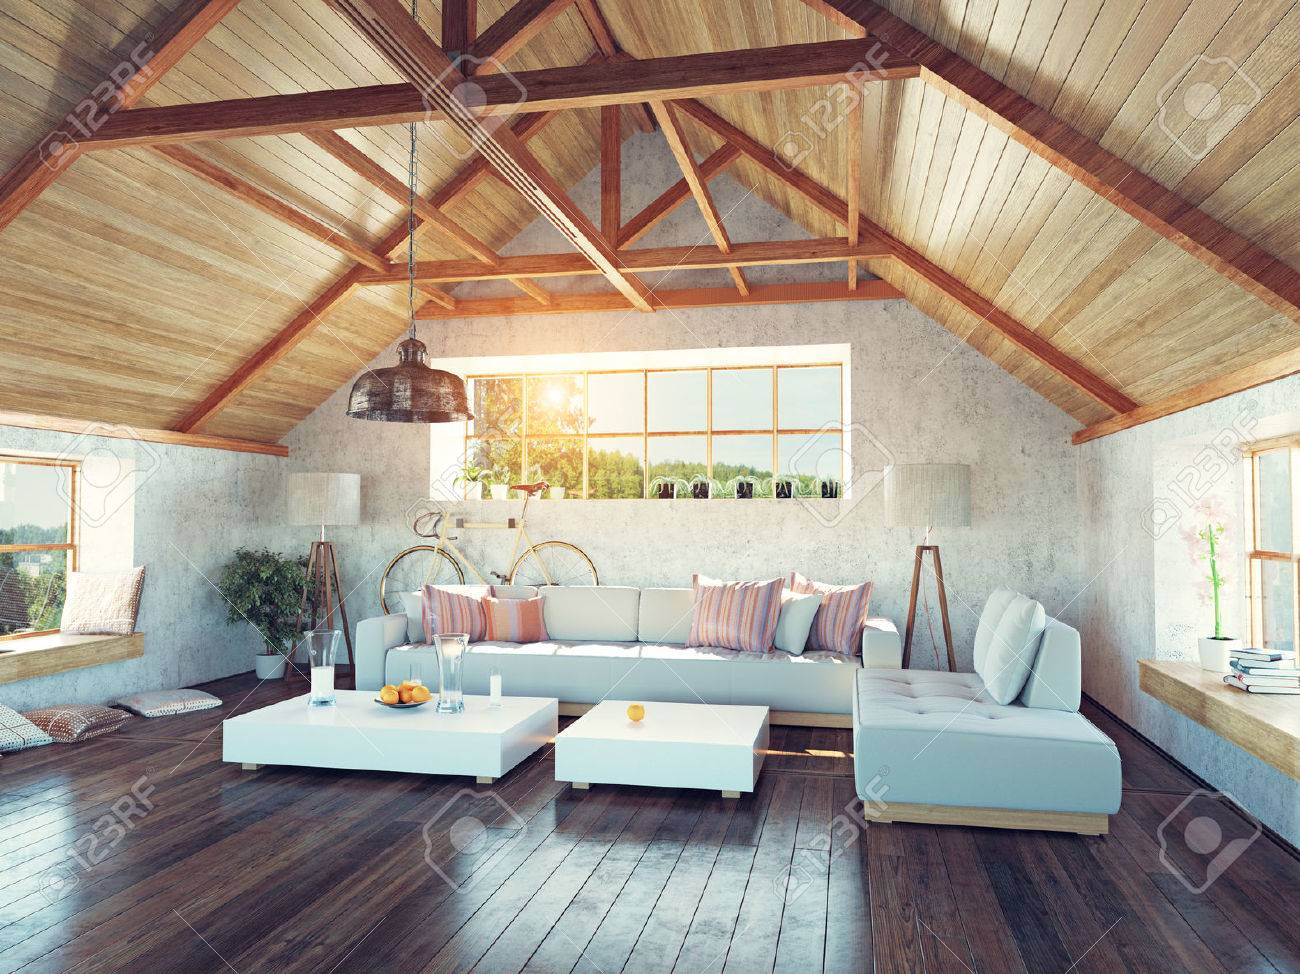 beautiful modern attic interior. 3d design concept. Stock Photo - 35926570 & Beautiful Modern Attic Interior. 3d Design Concept. Stock Photo ...